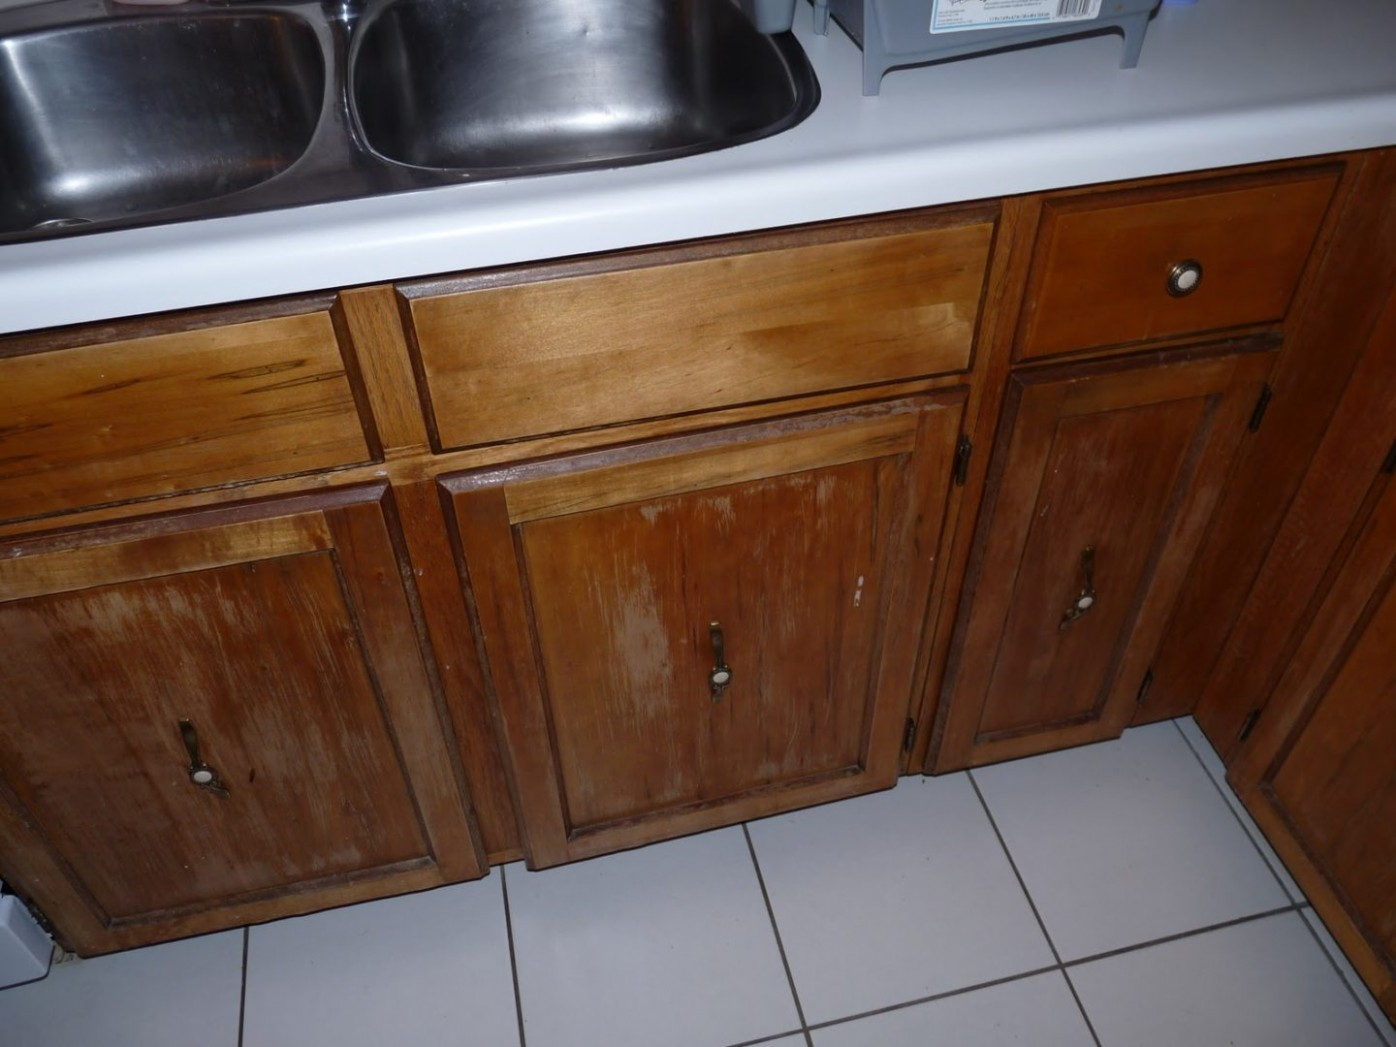 DIY Re-Varnished Cabinet Fronts  How to Restore Kitchen Cabinetry  - How To Clean And Varnish Kitchen Cabinets